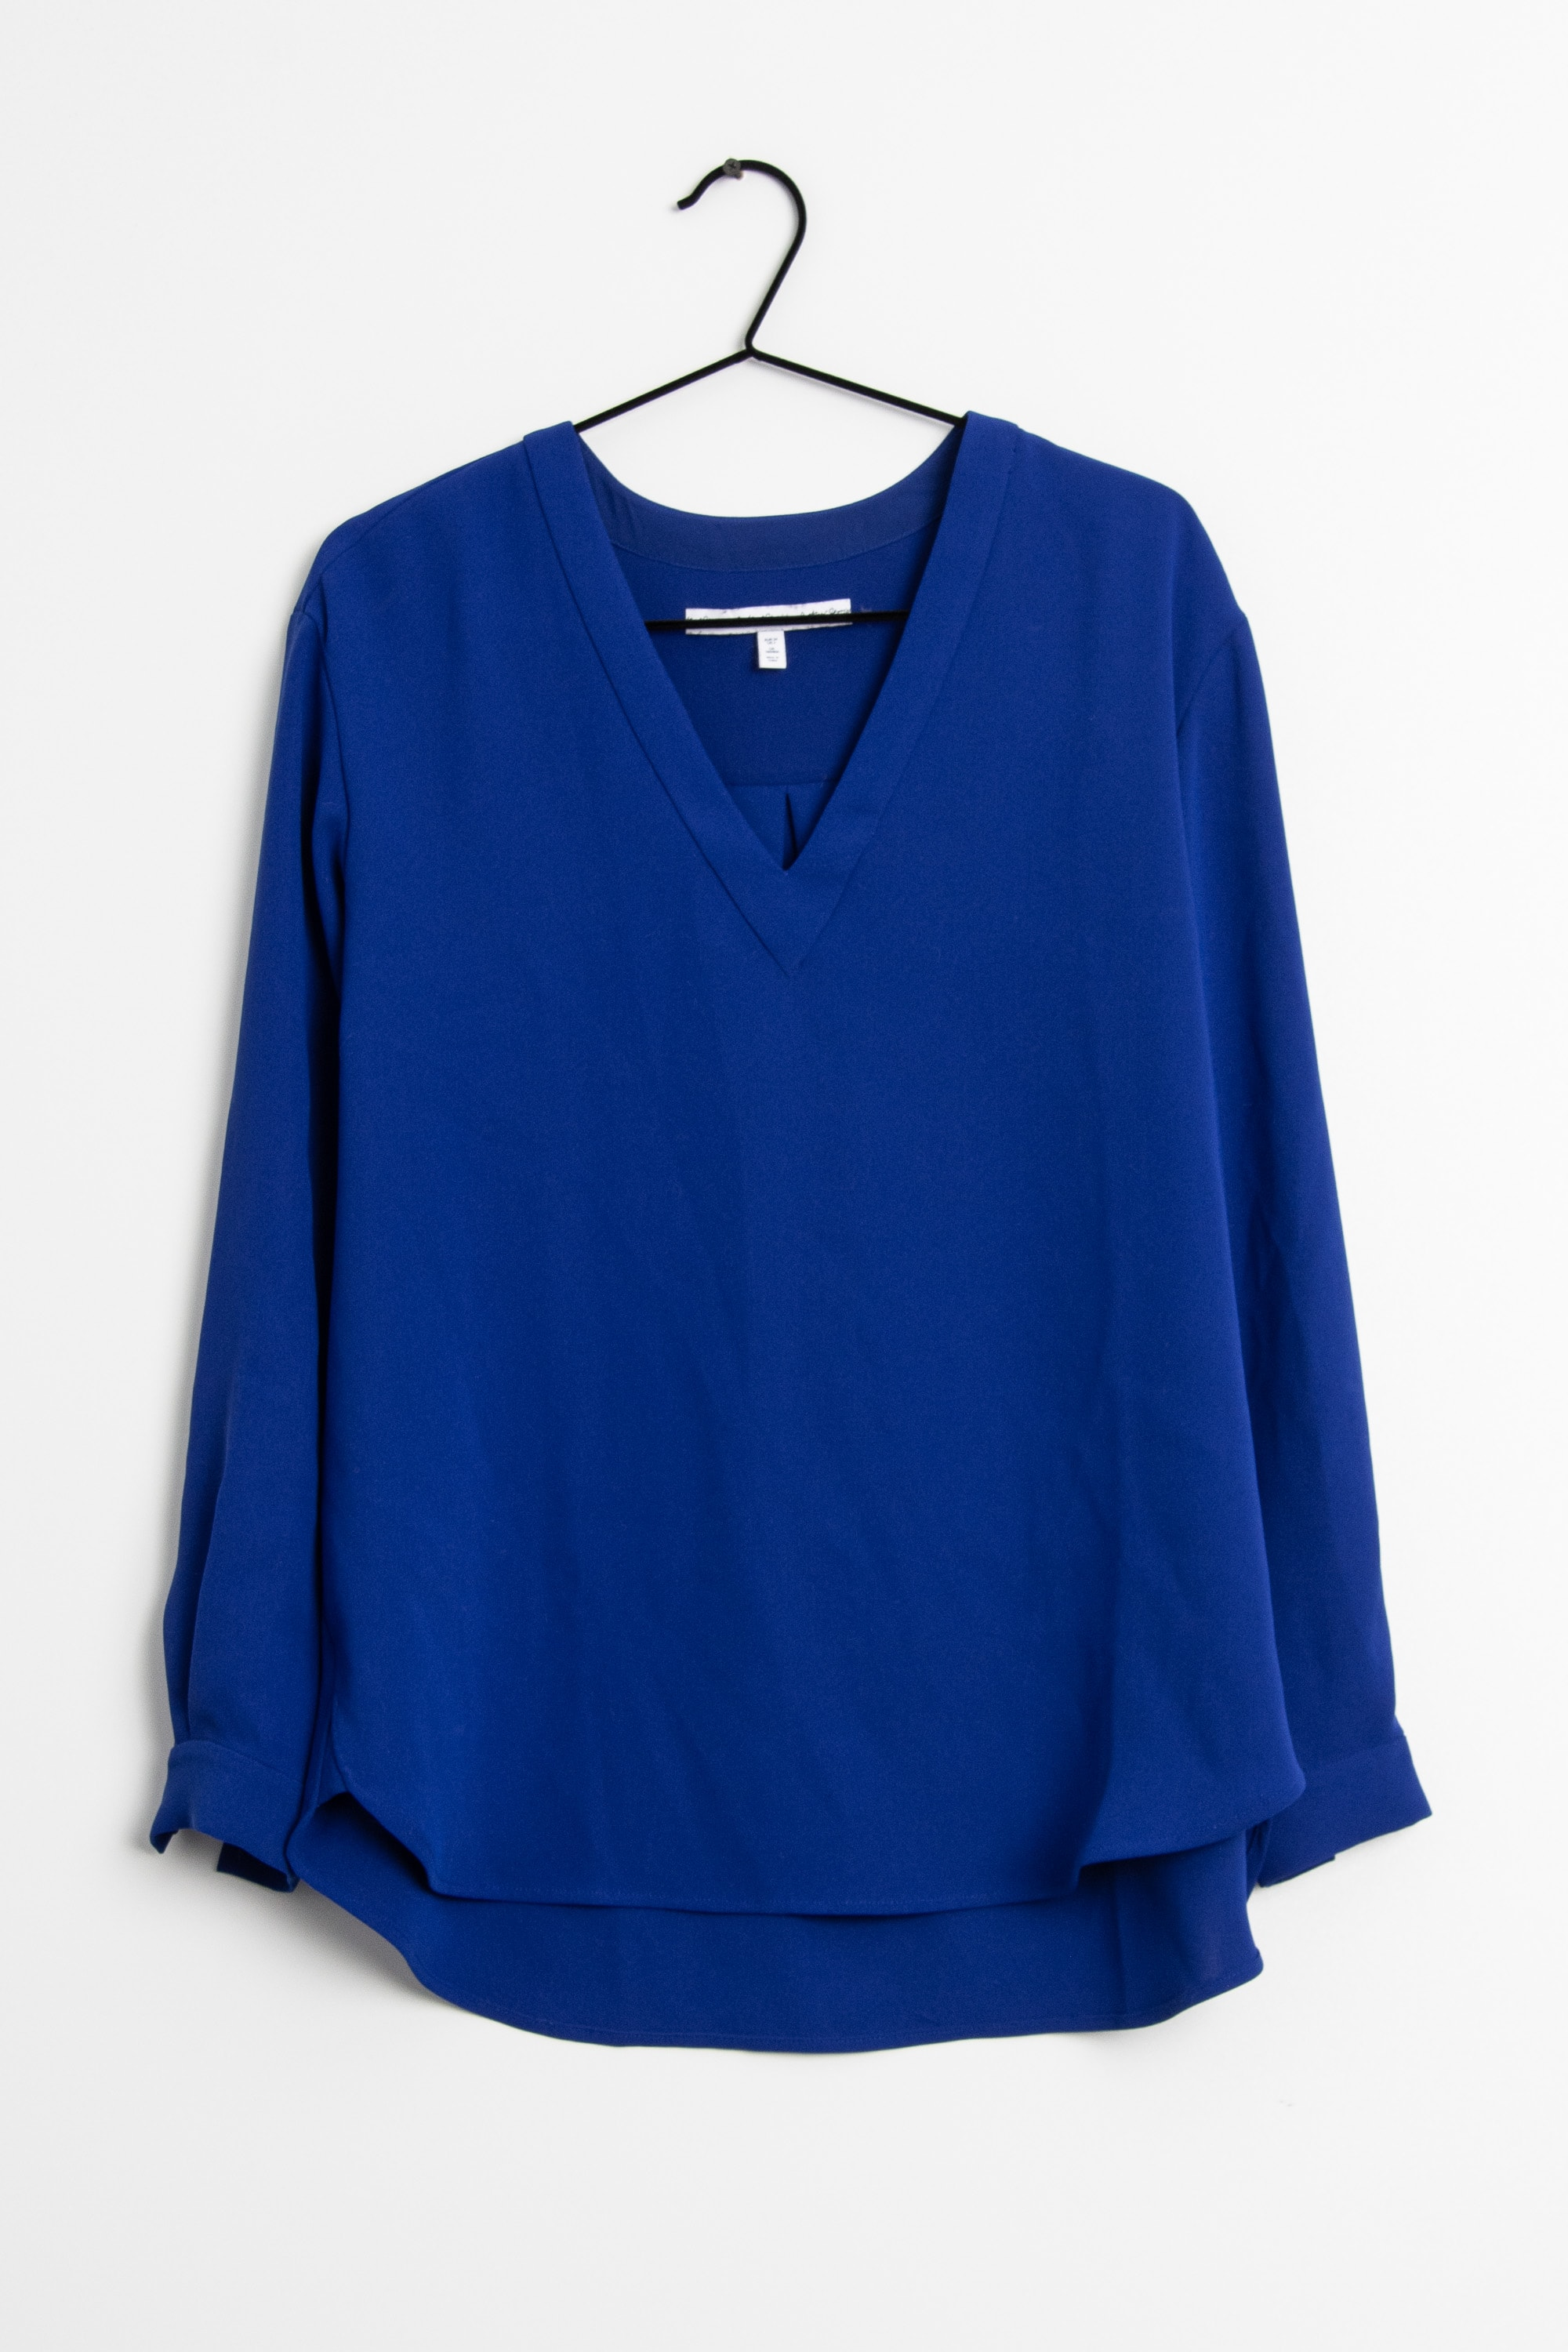 & other stories Bluse Blau Gr.34